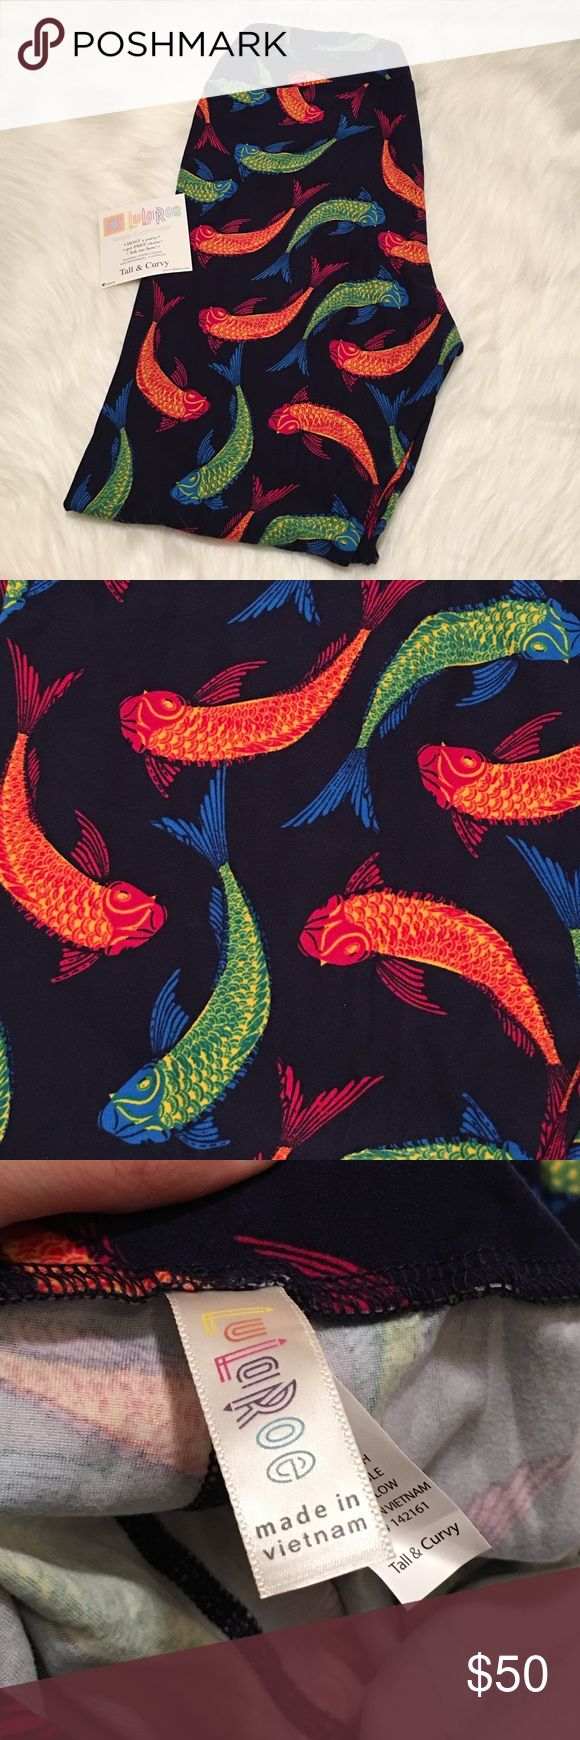 500 freshwater aquarium fish by greg jennings - Nwt Lularoe Tc Koi Fish Leggings Unicorn No Comments On Pricing